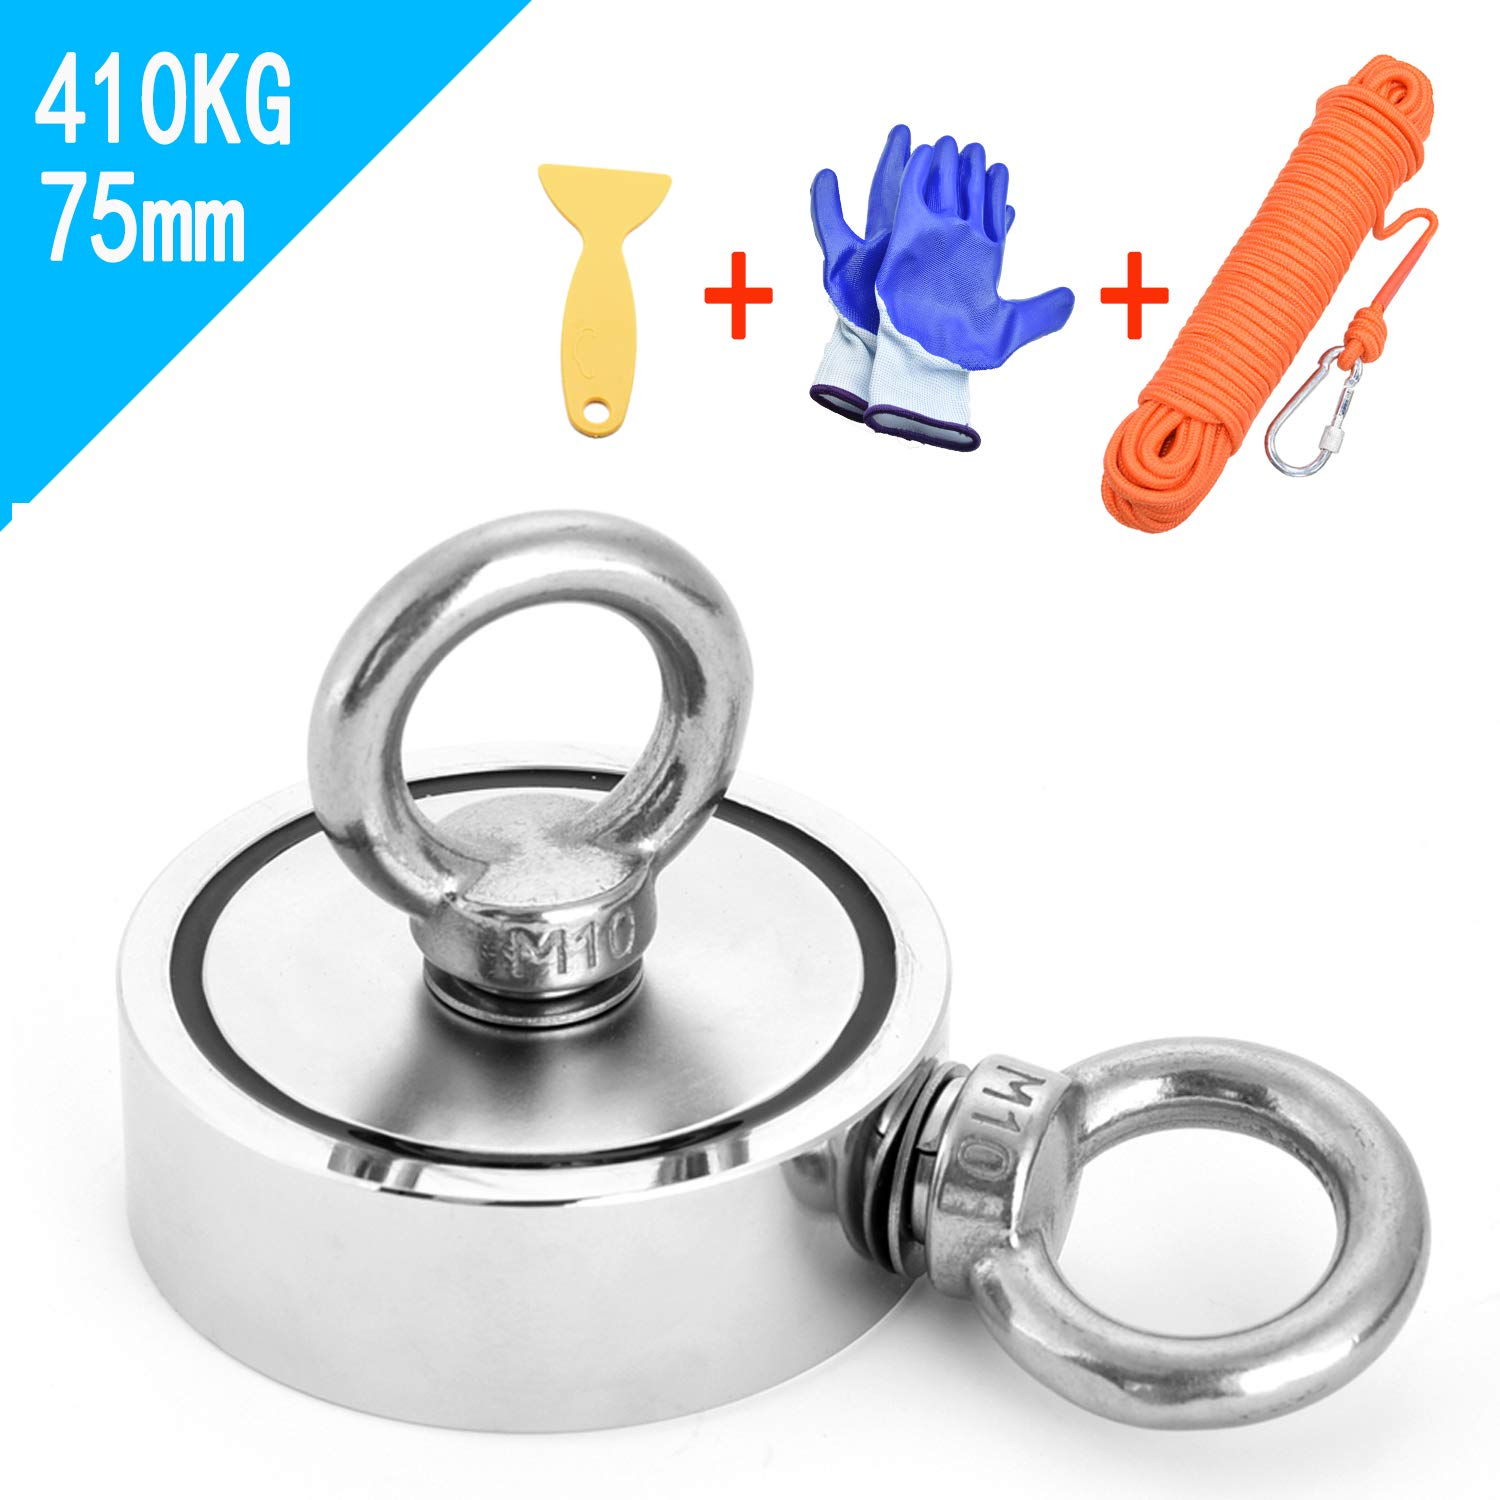 Double Sided Magnet Fishing Magnet with Rope x 66ft(20m), Neodymium Magnet with 2 Eyebolt, Combined 903LBS(410KG) Pulling Force, Perfect for Magnetic Fishing and Salvage in The River